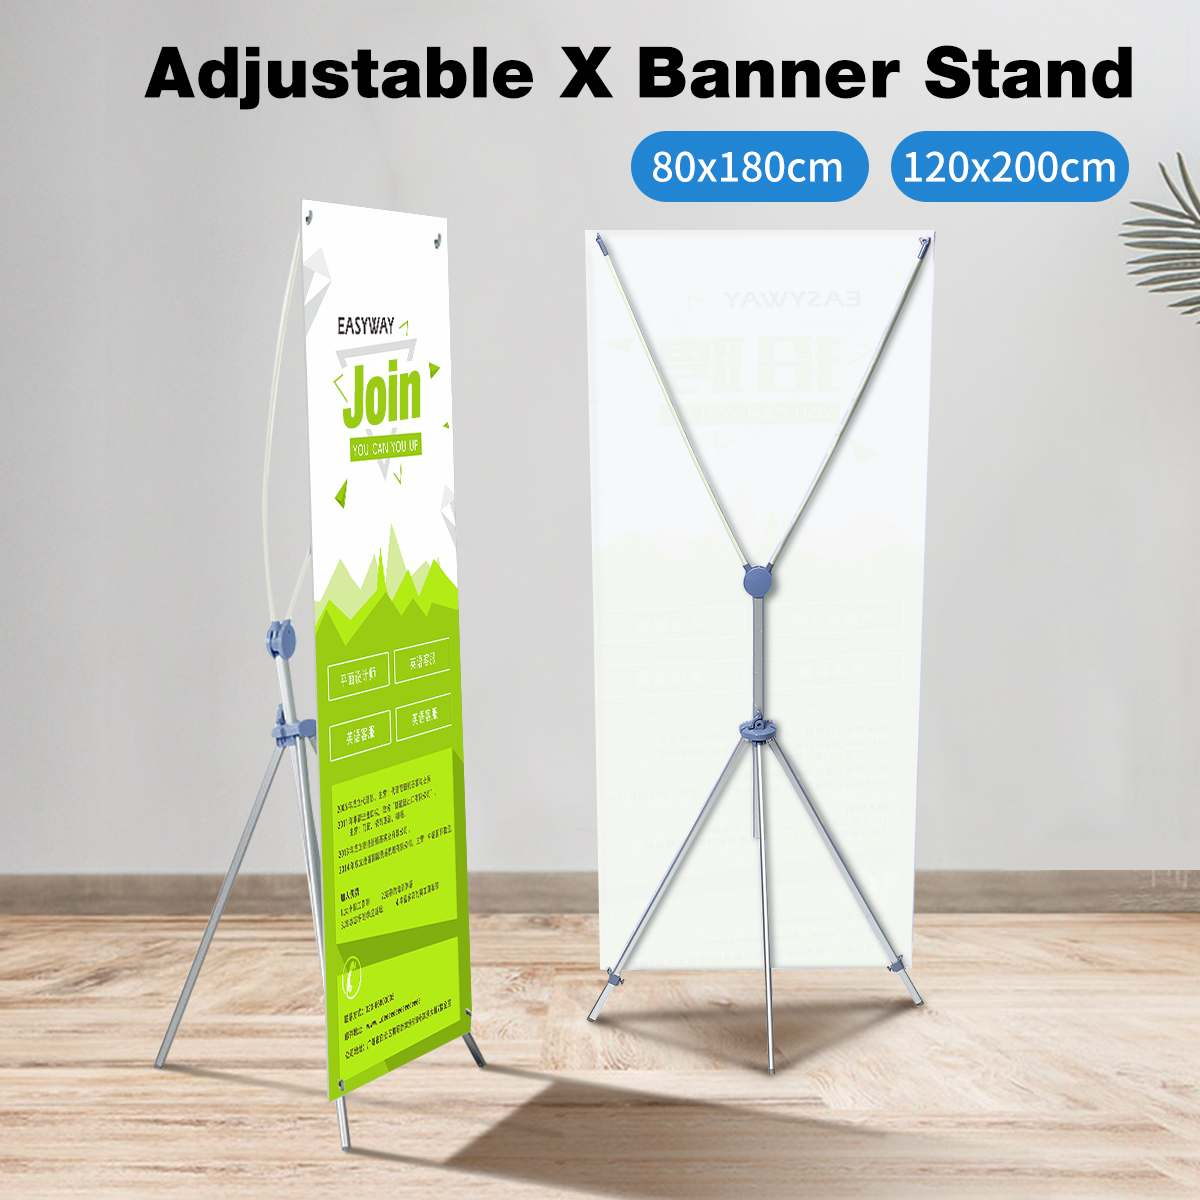 80*180cm/120*200cm Adjustable Tripod X Banner Stand+Travel Bag Trade Show Presentation Poster Holder Wedding Event Display Rack